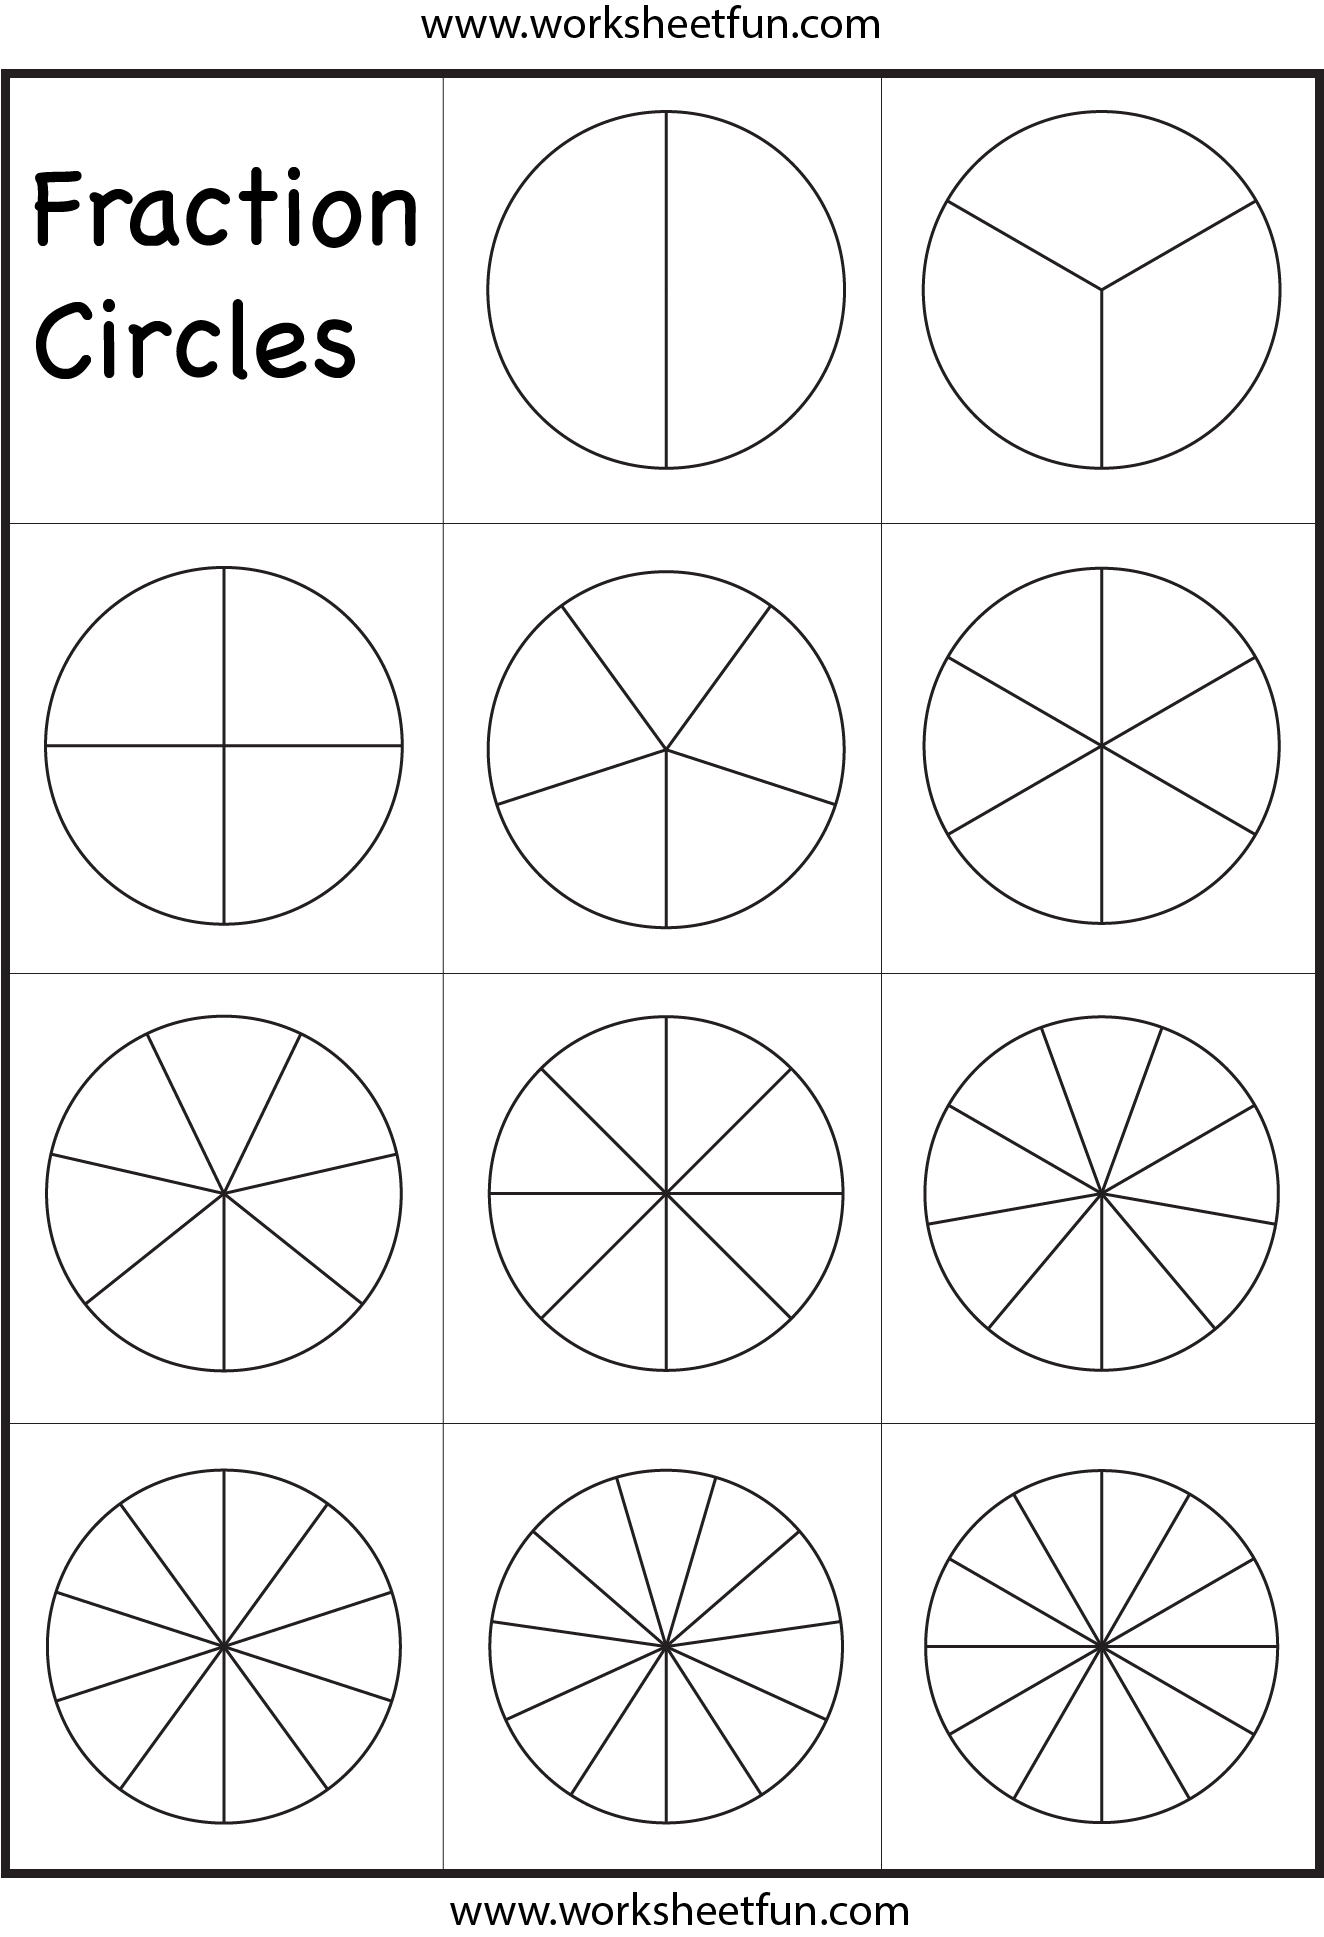 Fraction Circles Worksheet Printable Worksheets – Fraction Bar Worksheets Printable